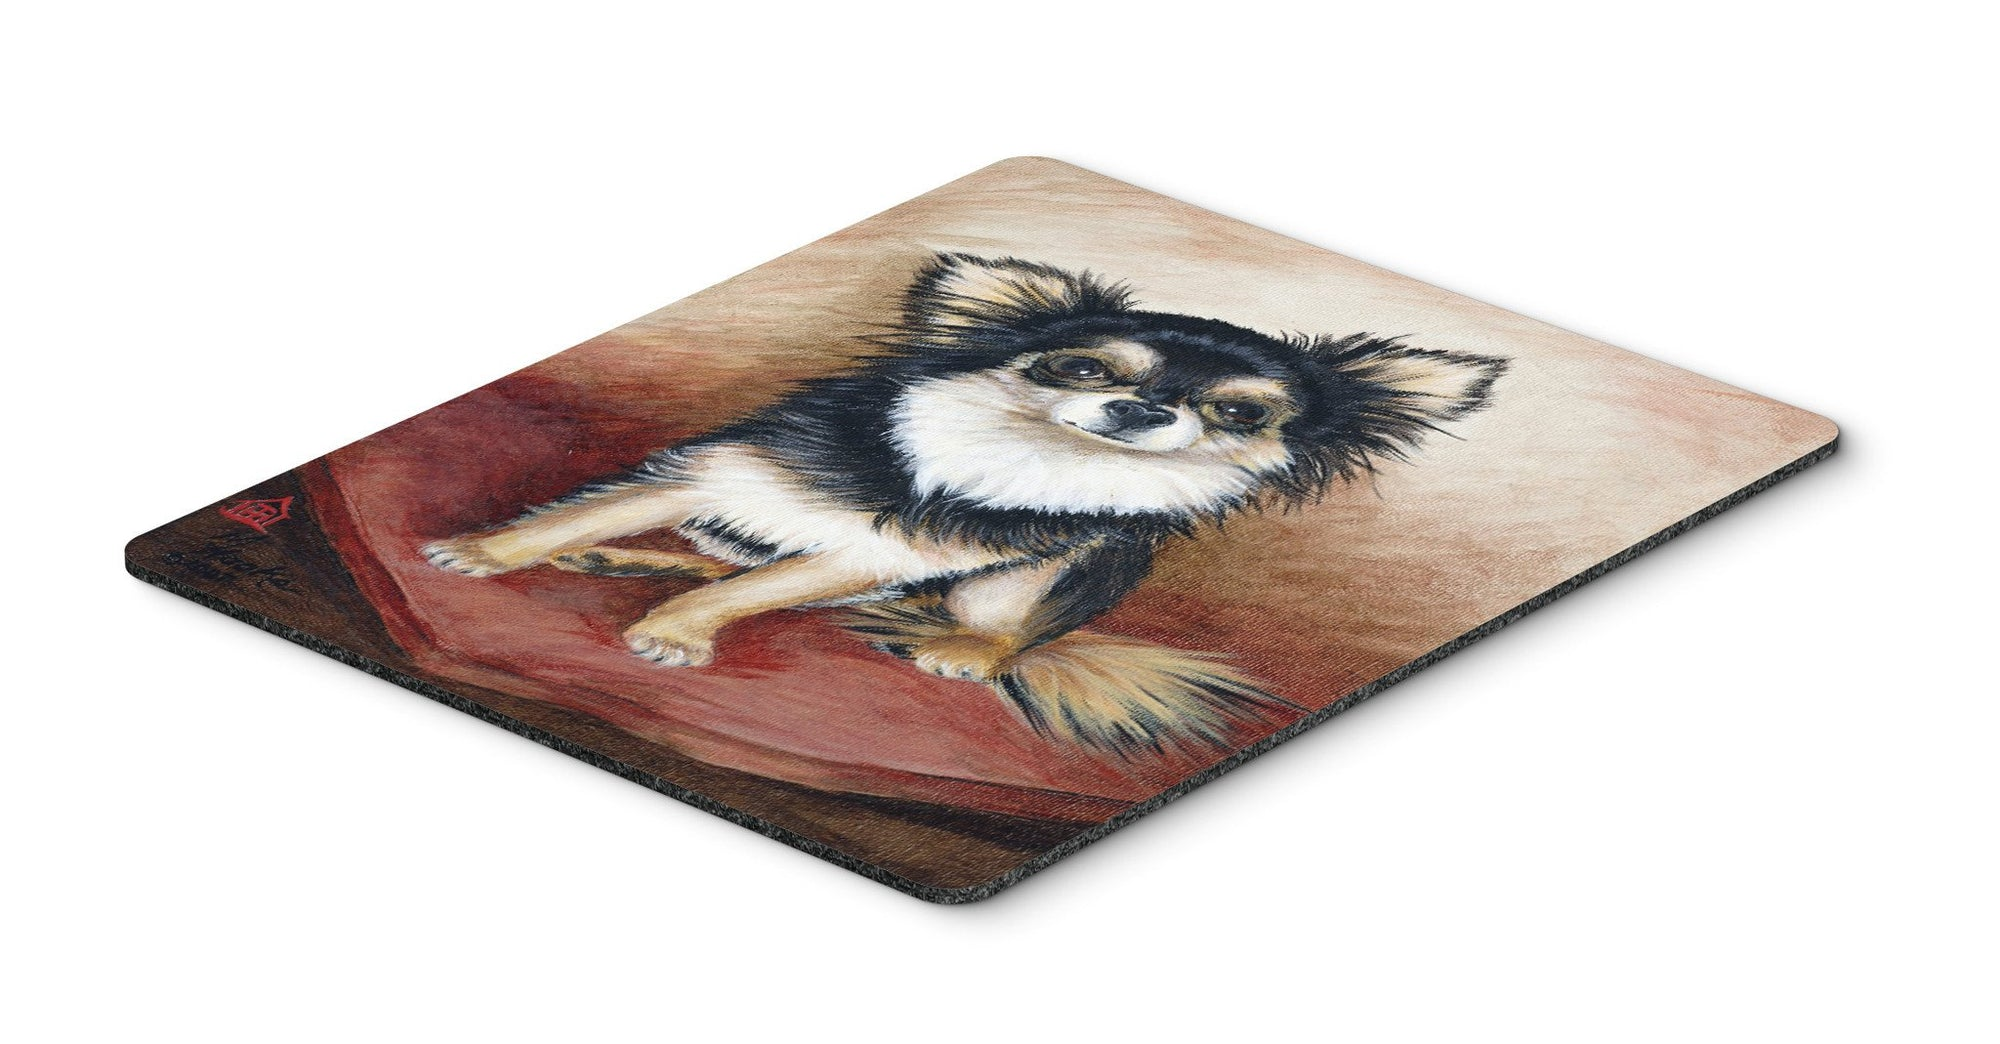 Chihuahua Long Hair Mouse Pad, Hot Pad or Trivet MH1035MP by Caroline's Treasures